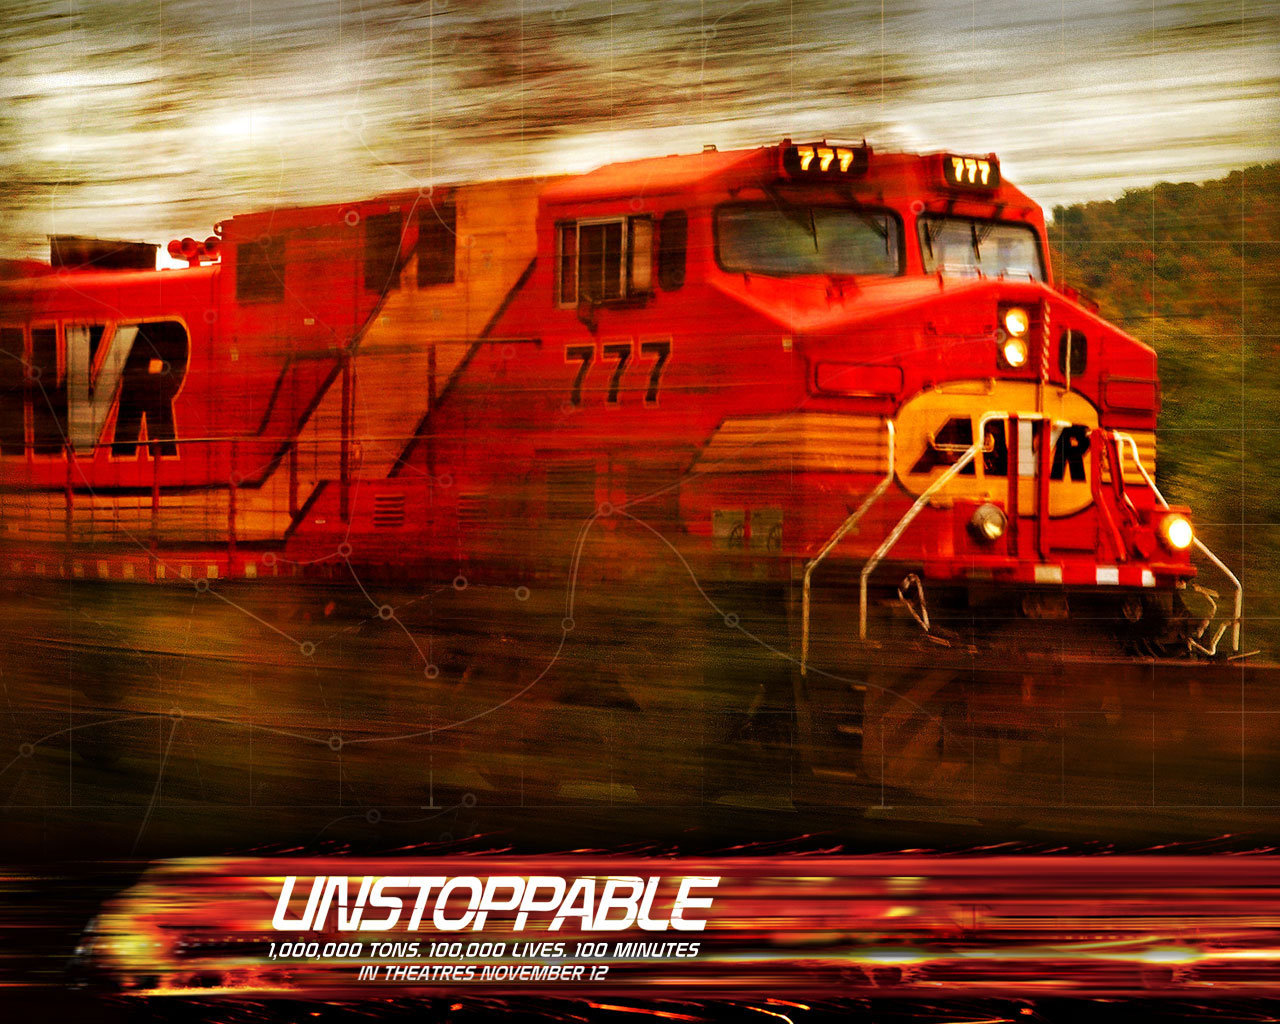 Unstoppable   Unstoppable Wallpaper 25395890 1280x1024